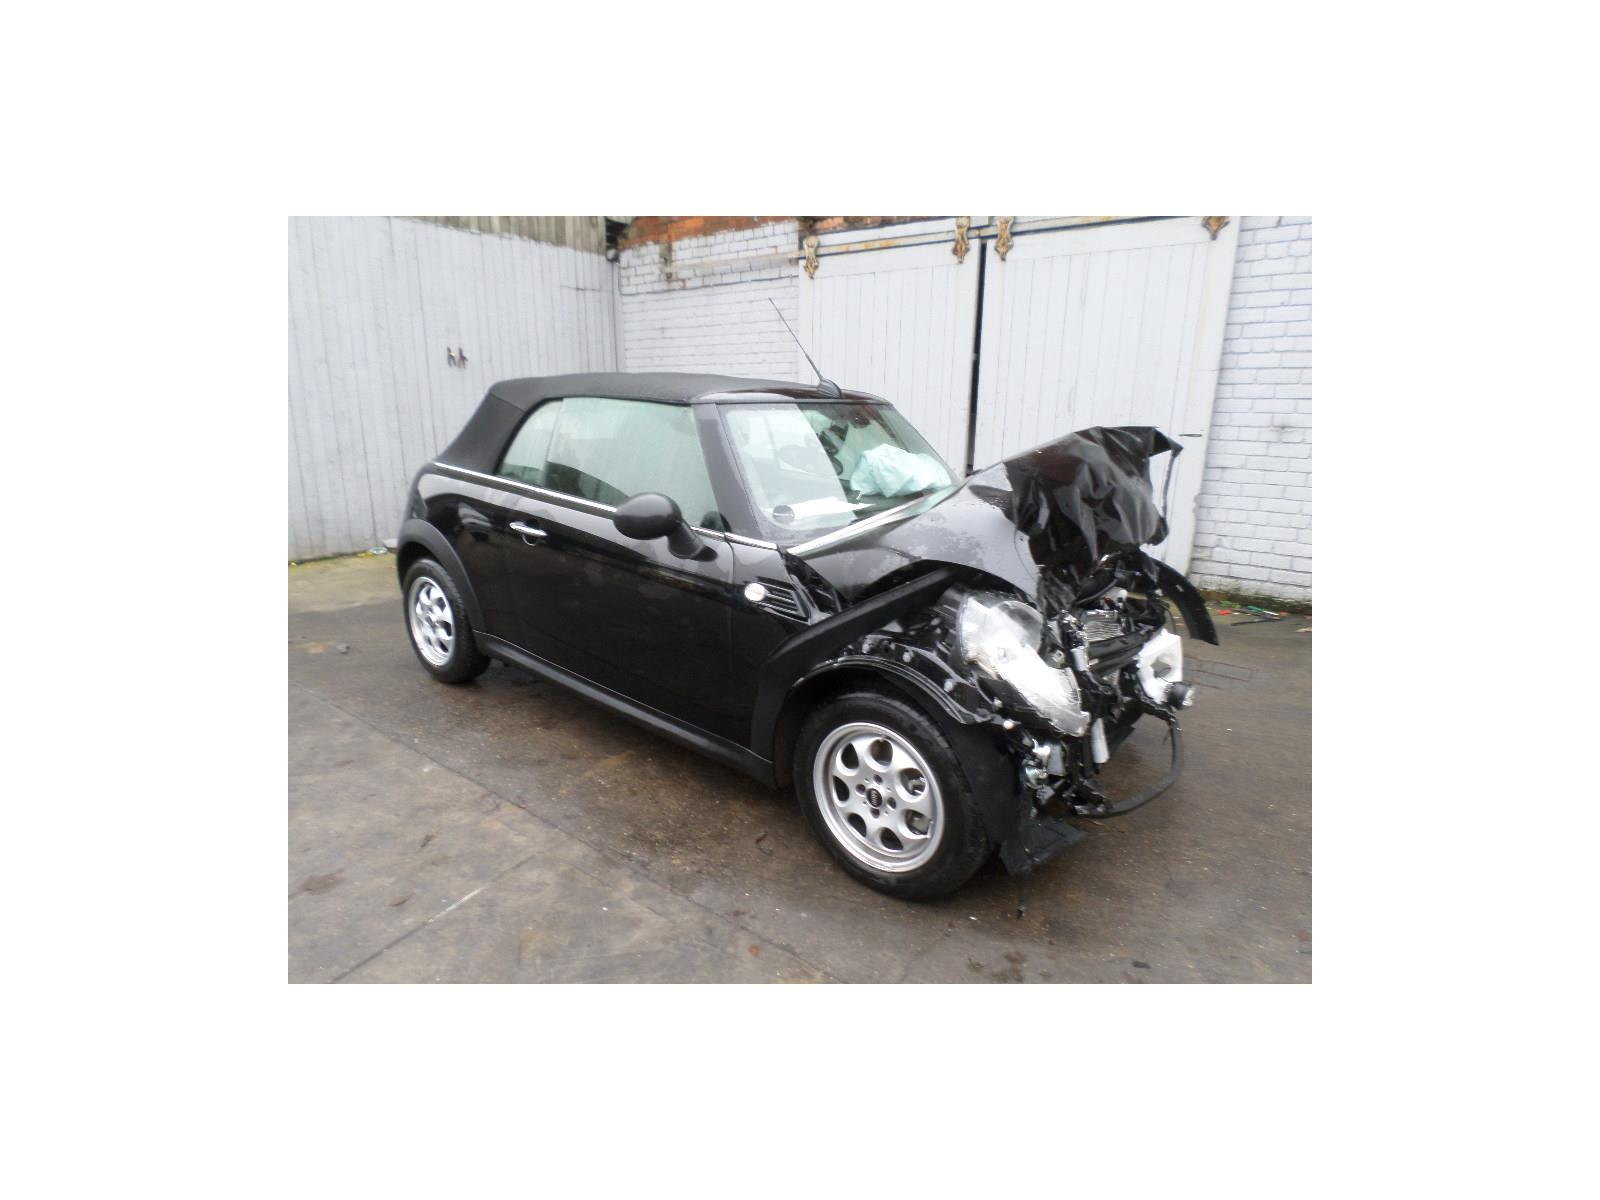 2009 Mini Cooper Convertible Parts Diagram Electrical Wiring Diagrams 2015 Fuse To 2 Door Cabriolet Petrol Manual Trim